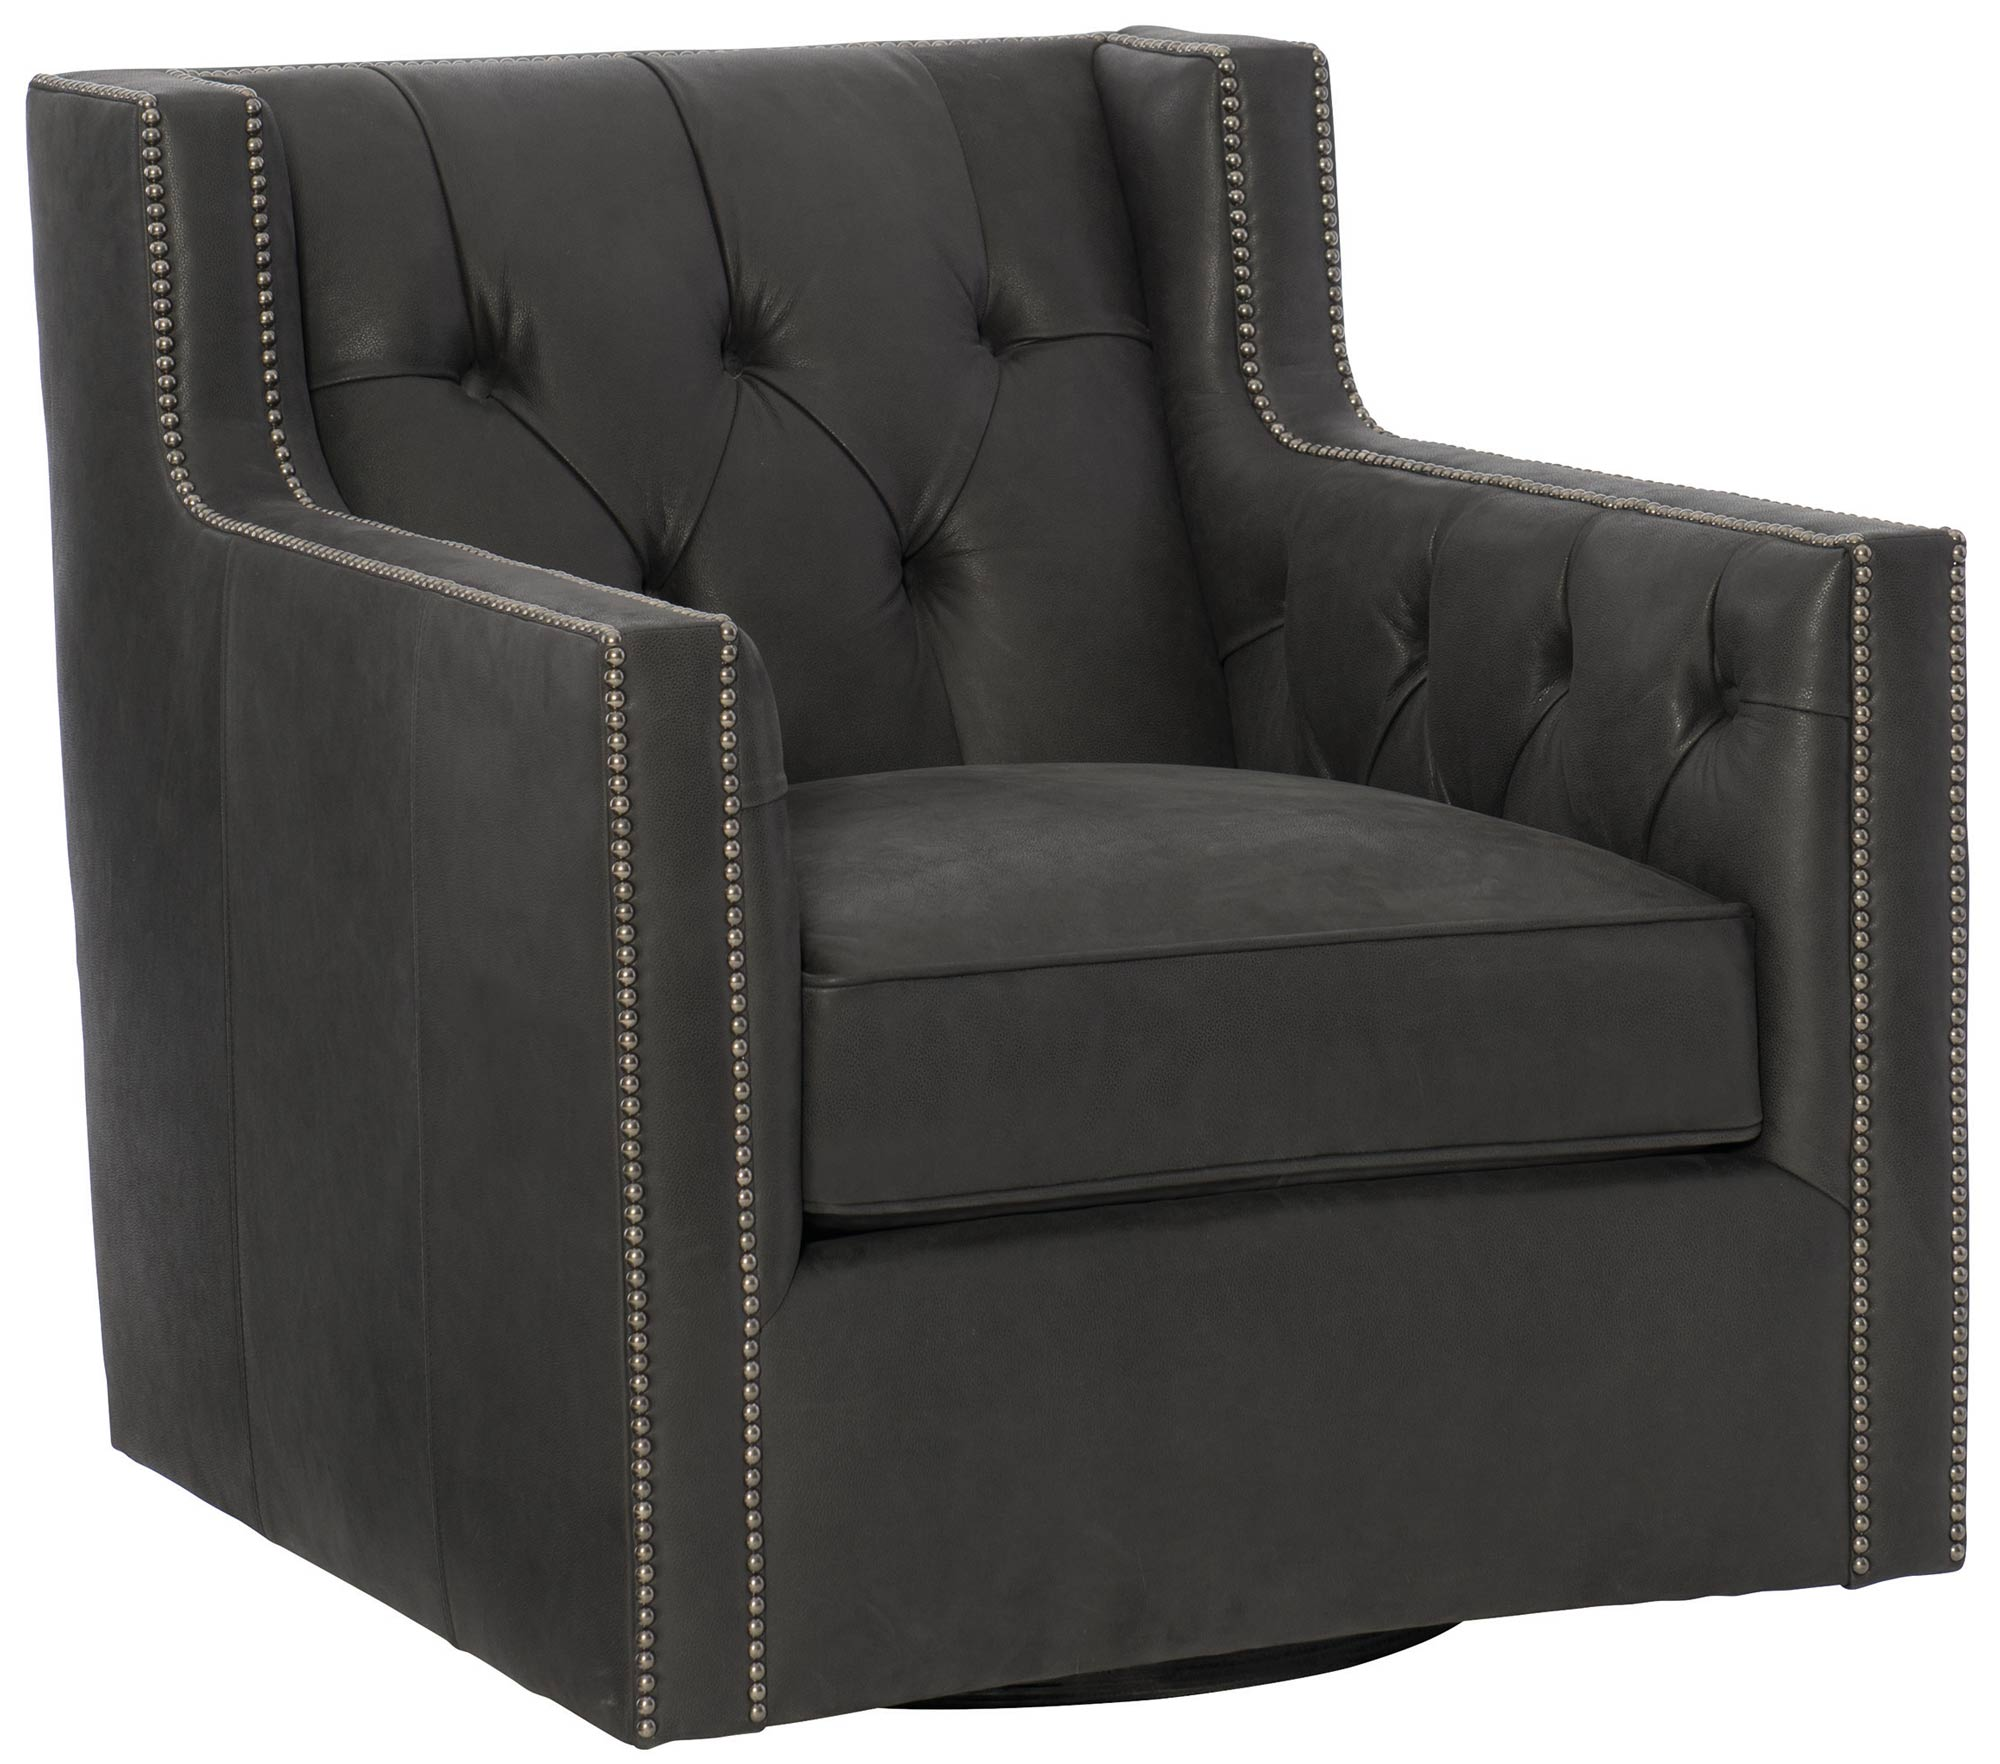 Bernhardt Transitional Candace Living Room Leather Upholstered Swivel Chair